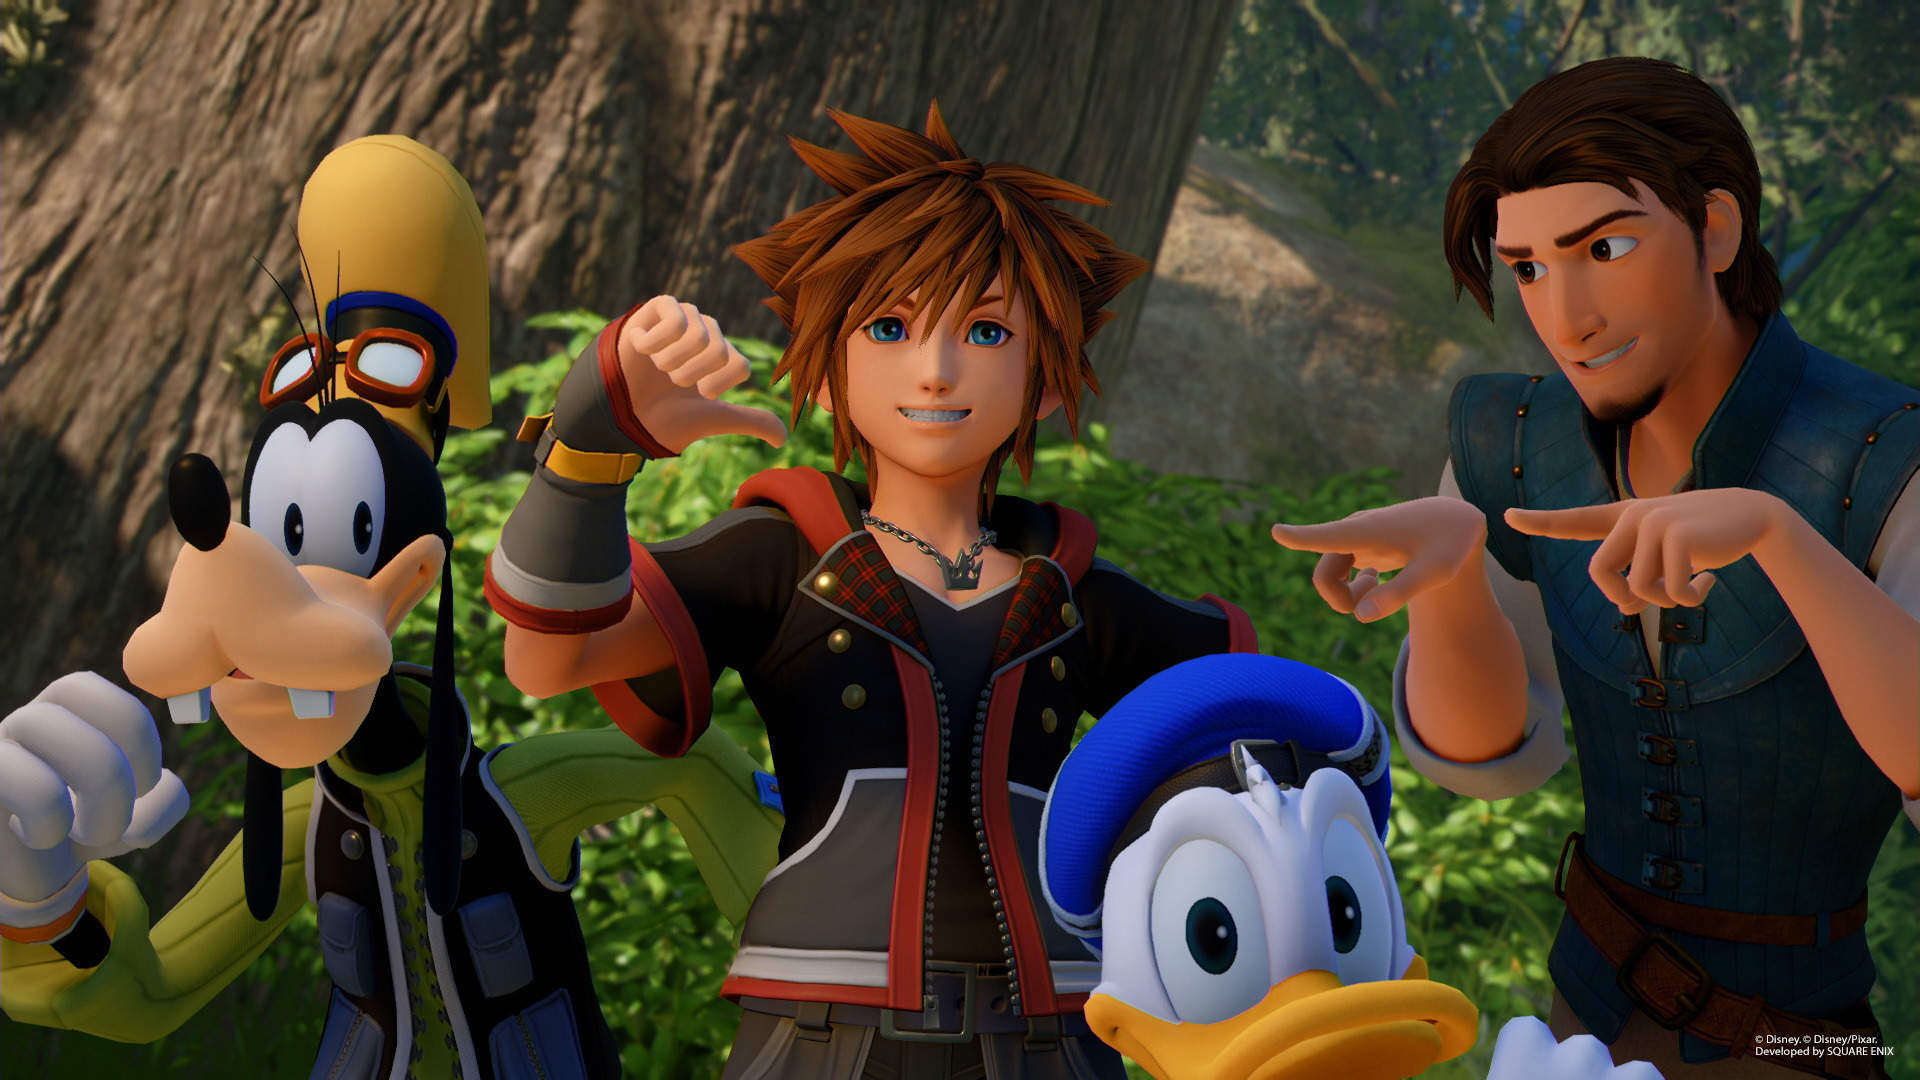 Kingdom Hearts - Games We've Never Played